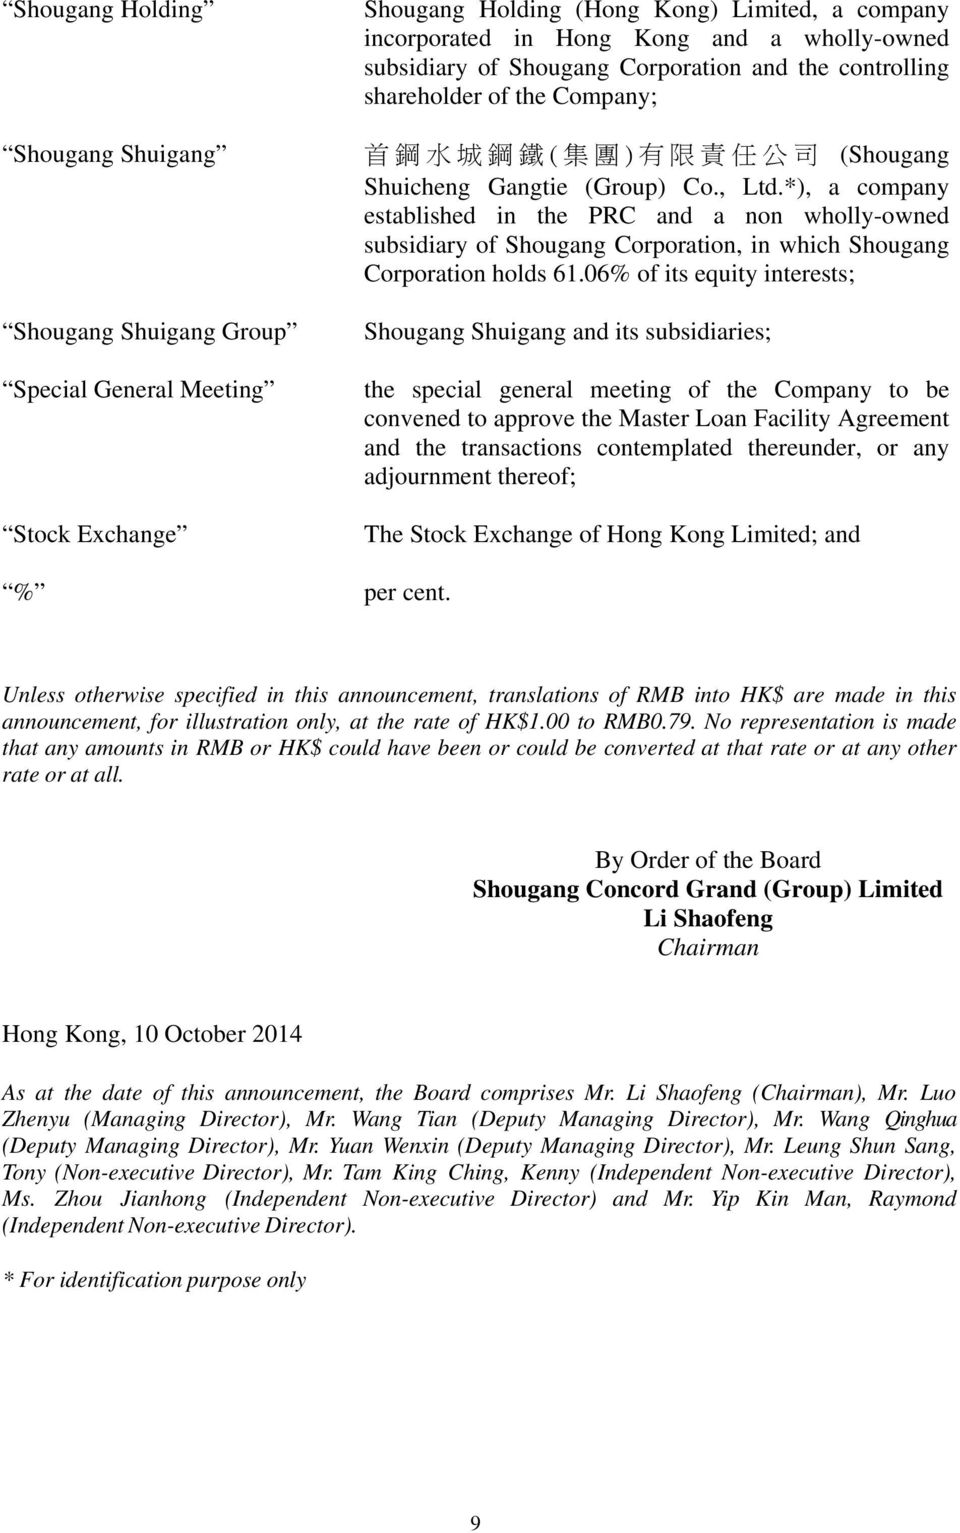 *), a company established in the PRC and a non wholly-owned subsidiary of Shougang Corporation, in which Shougang Corporation holds 61.